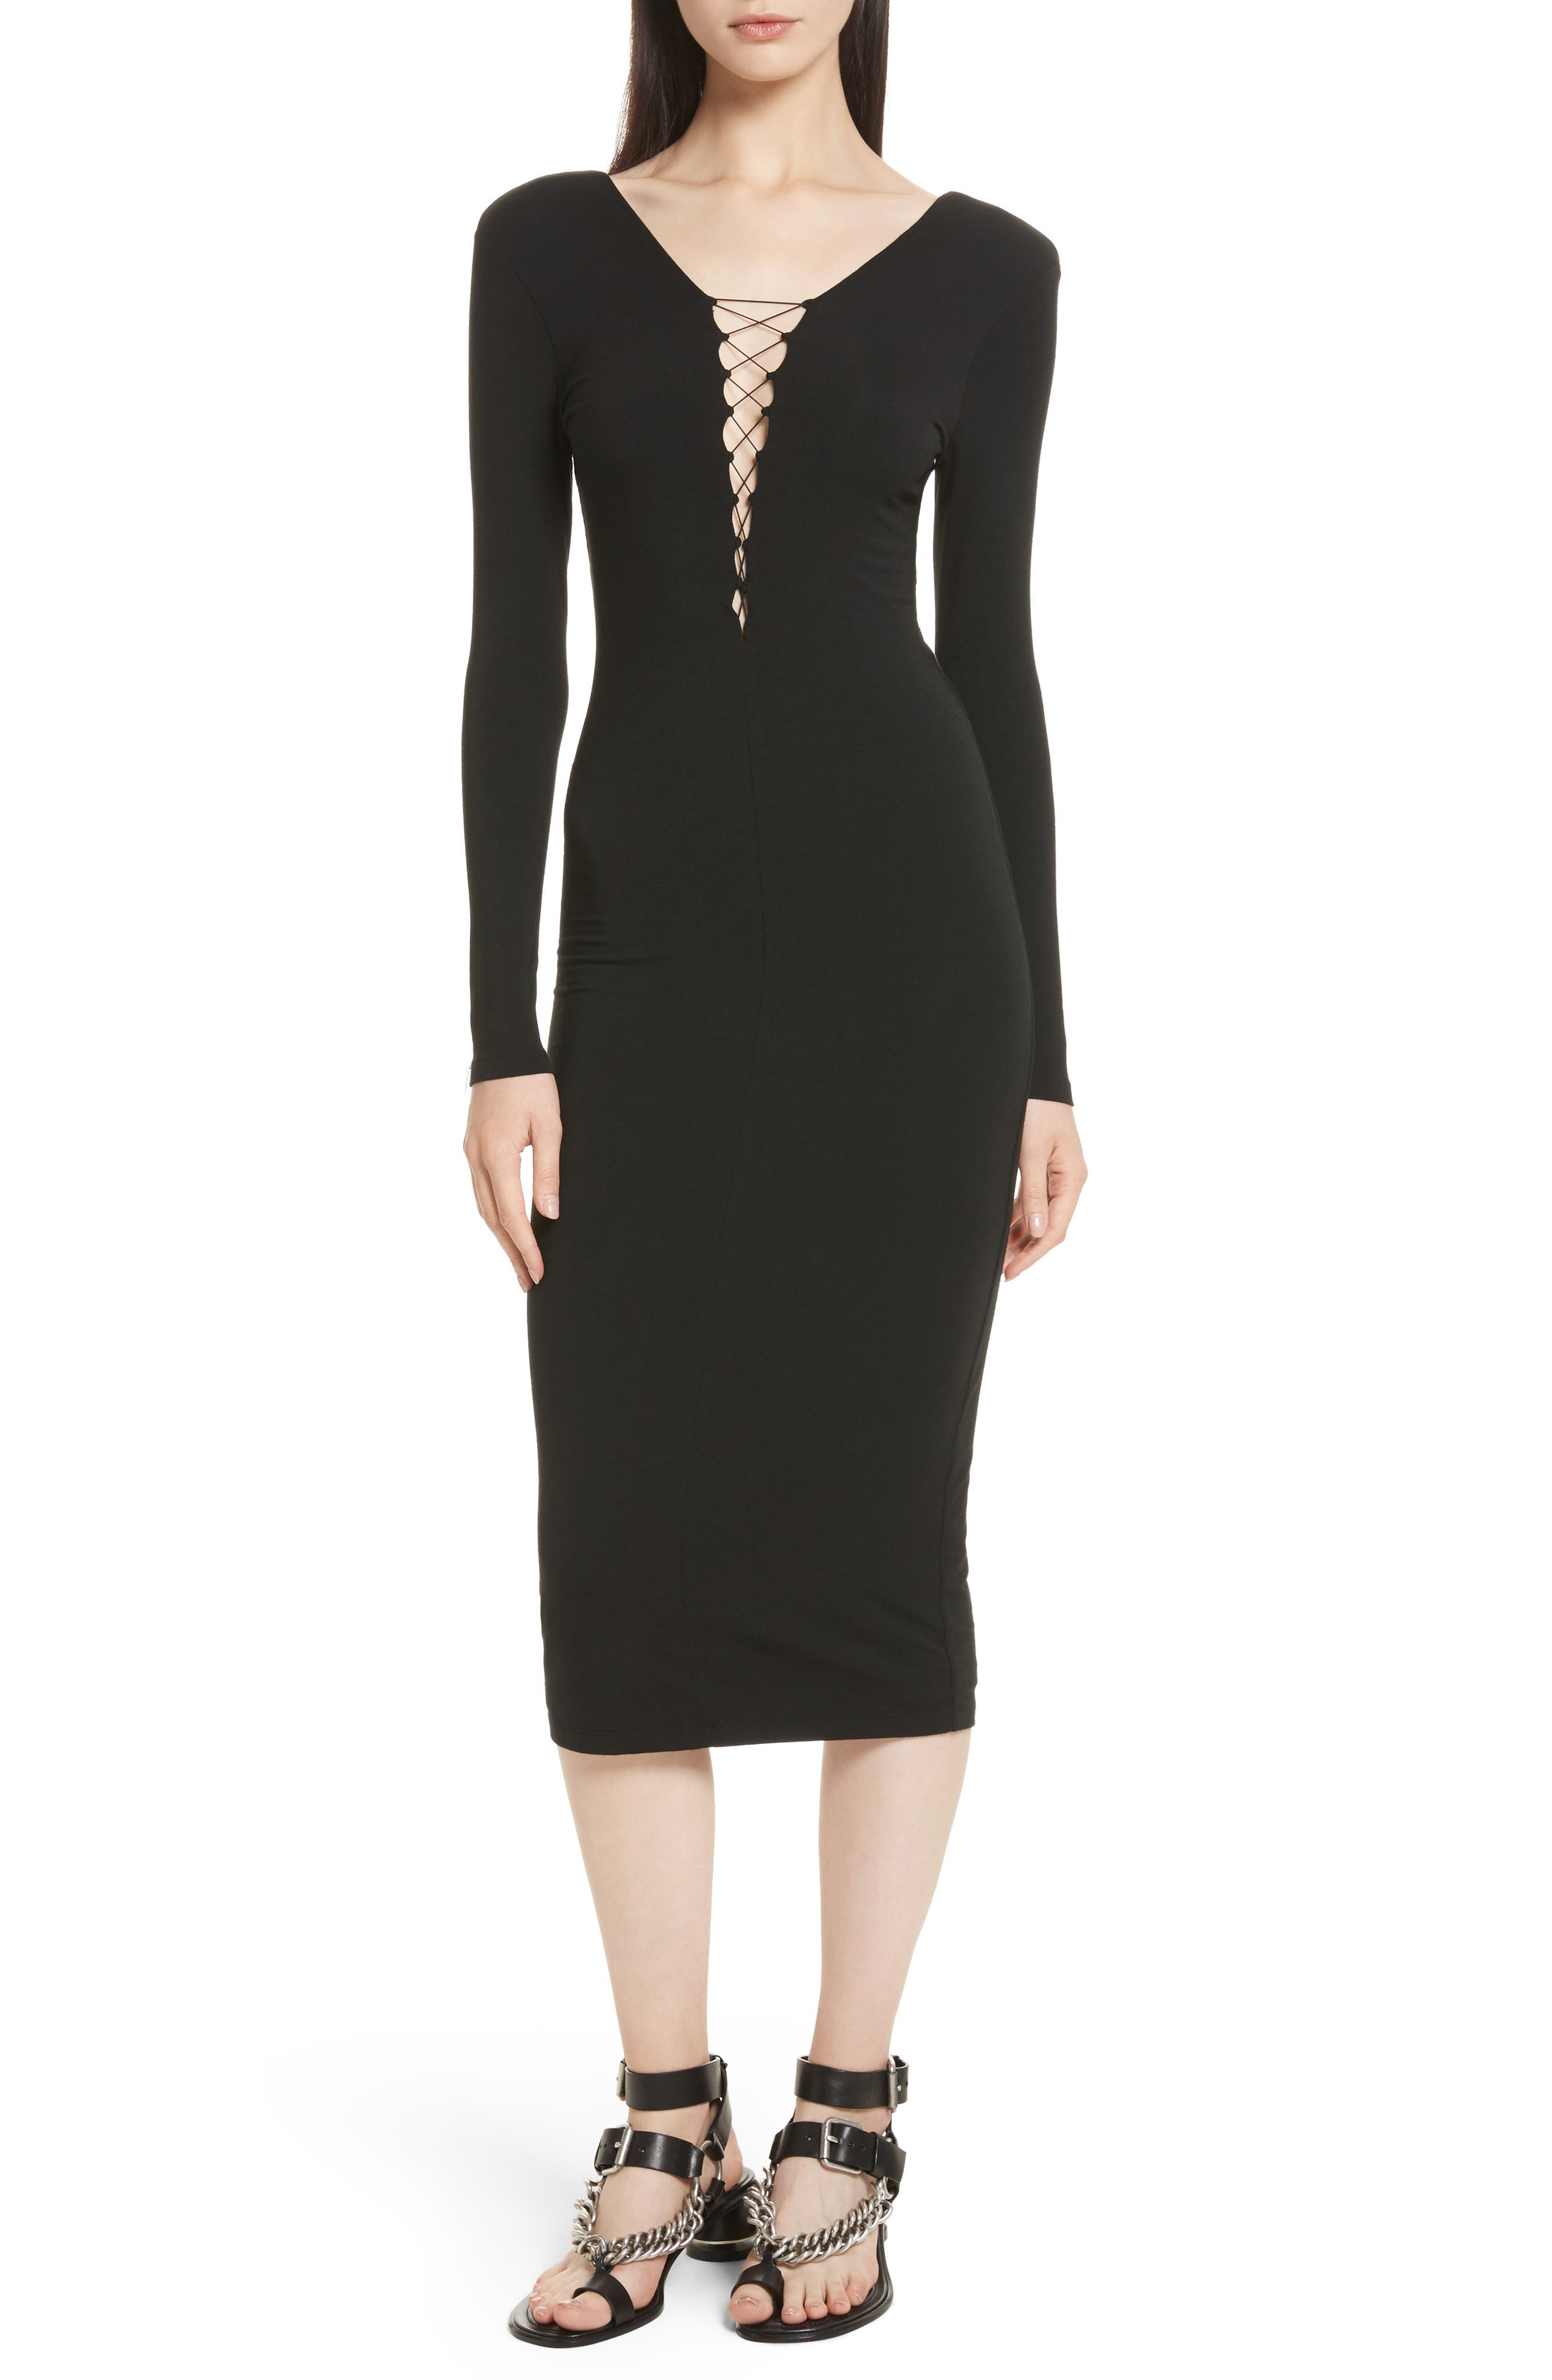 T by Alexander Wang Lace-Up Stretch Jersey Midi Dress,                             Main thumbnail 1, color,                             001